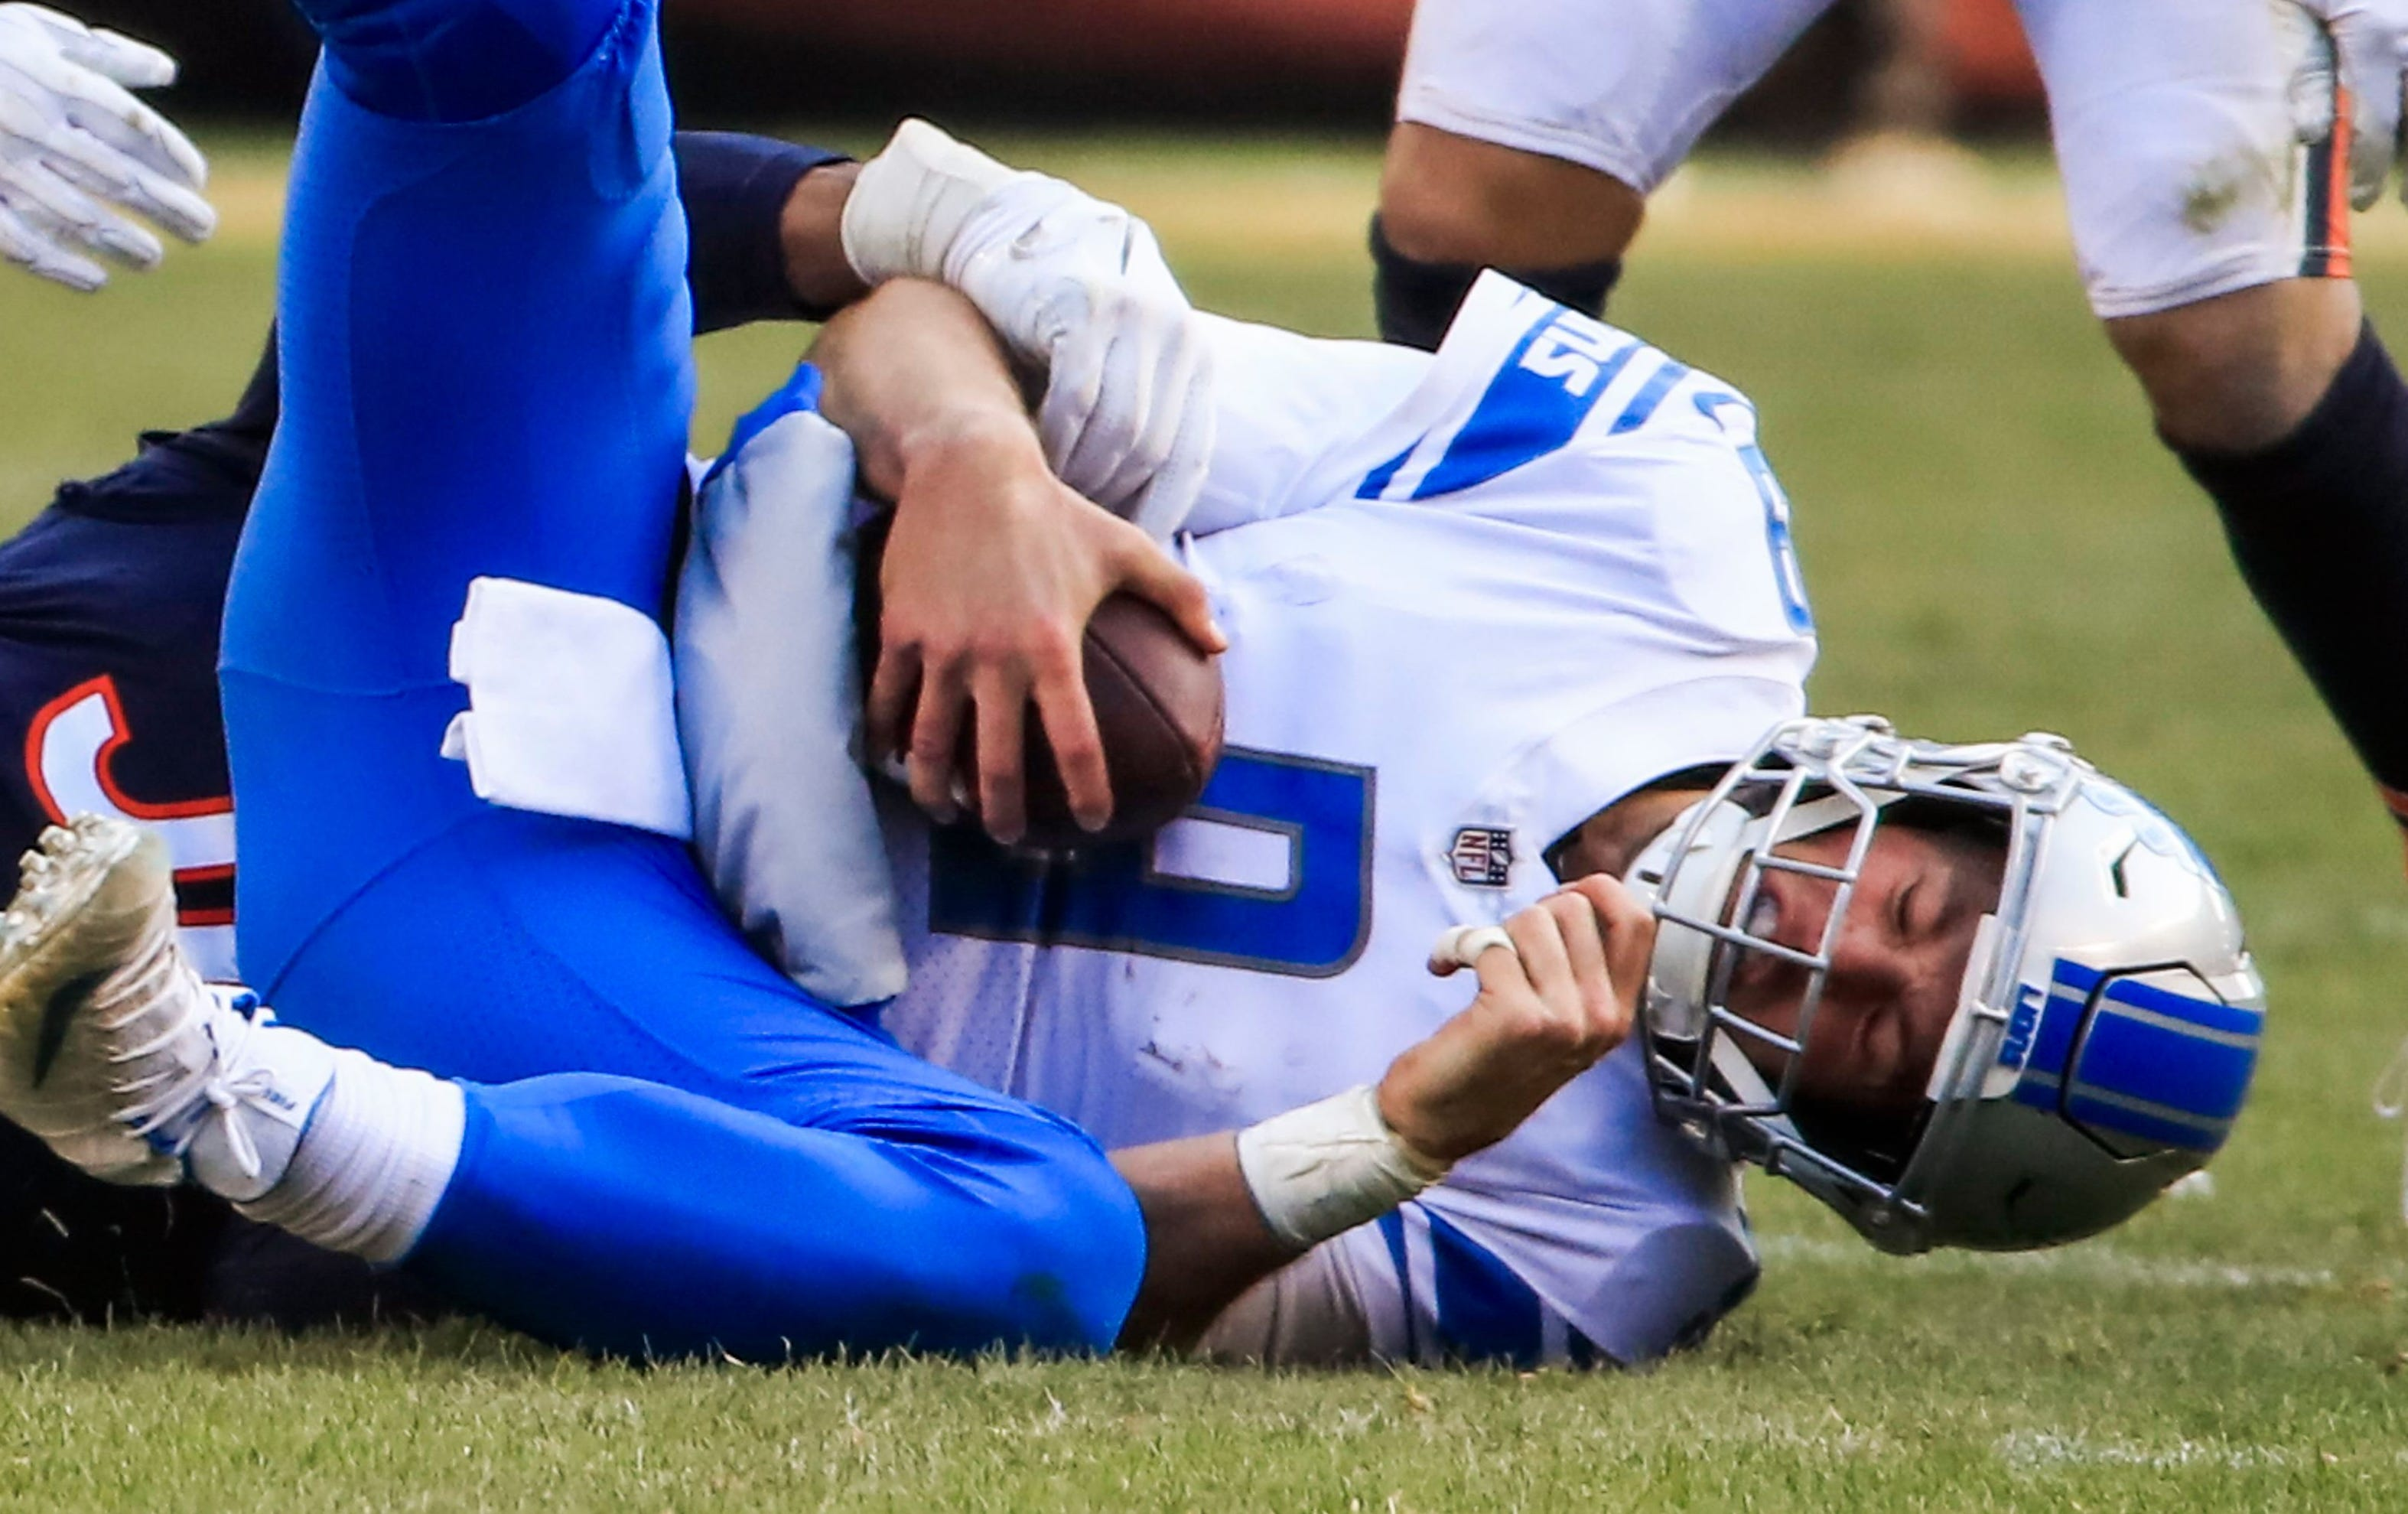 Detroit Lions quarterback Matthew Stafford is sacked by Chicago Bears linebacker Khalil Mack at Soldier Field in Chicago, Nov. 11, 2018.